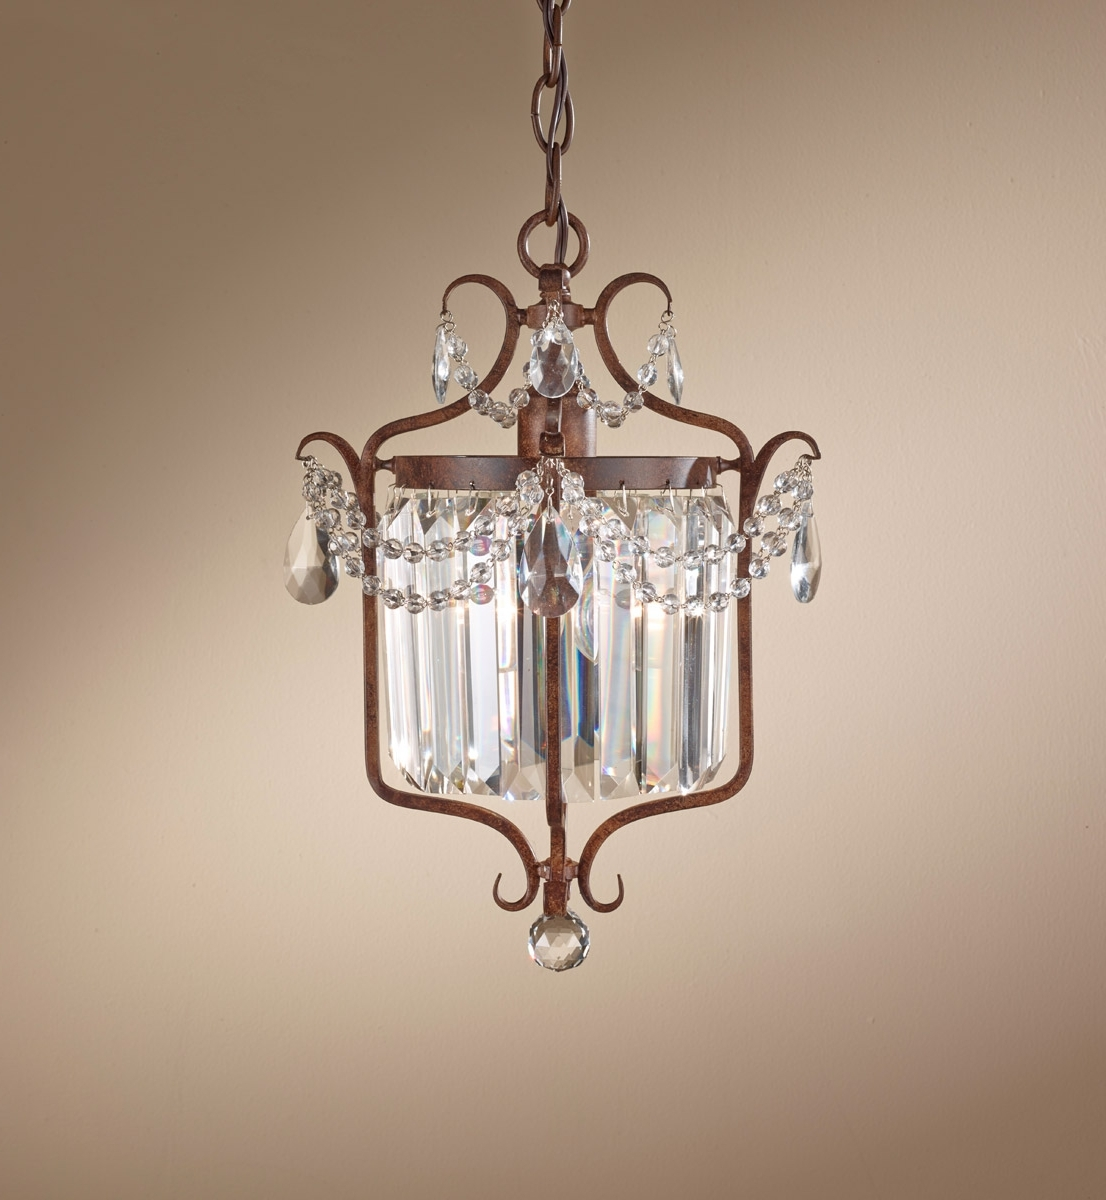 Widely Used Gianna Scuro 1 Light Mini Chandelier (View 12 of 15)